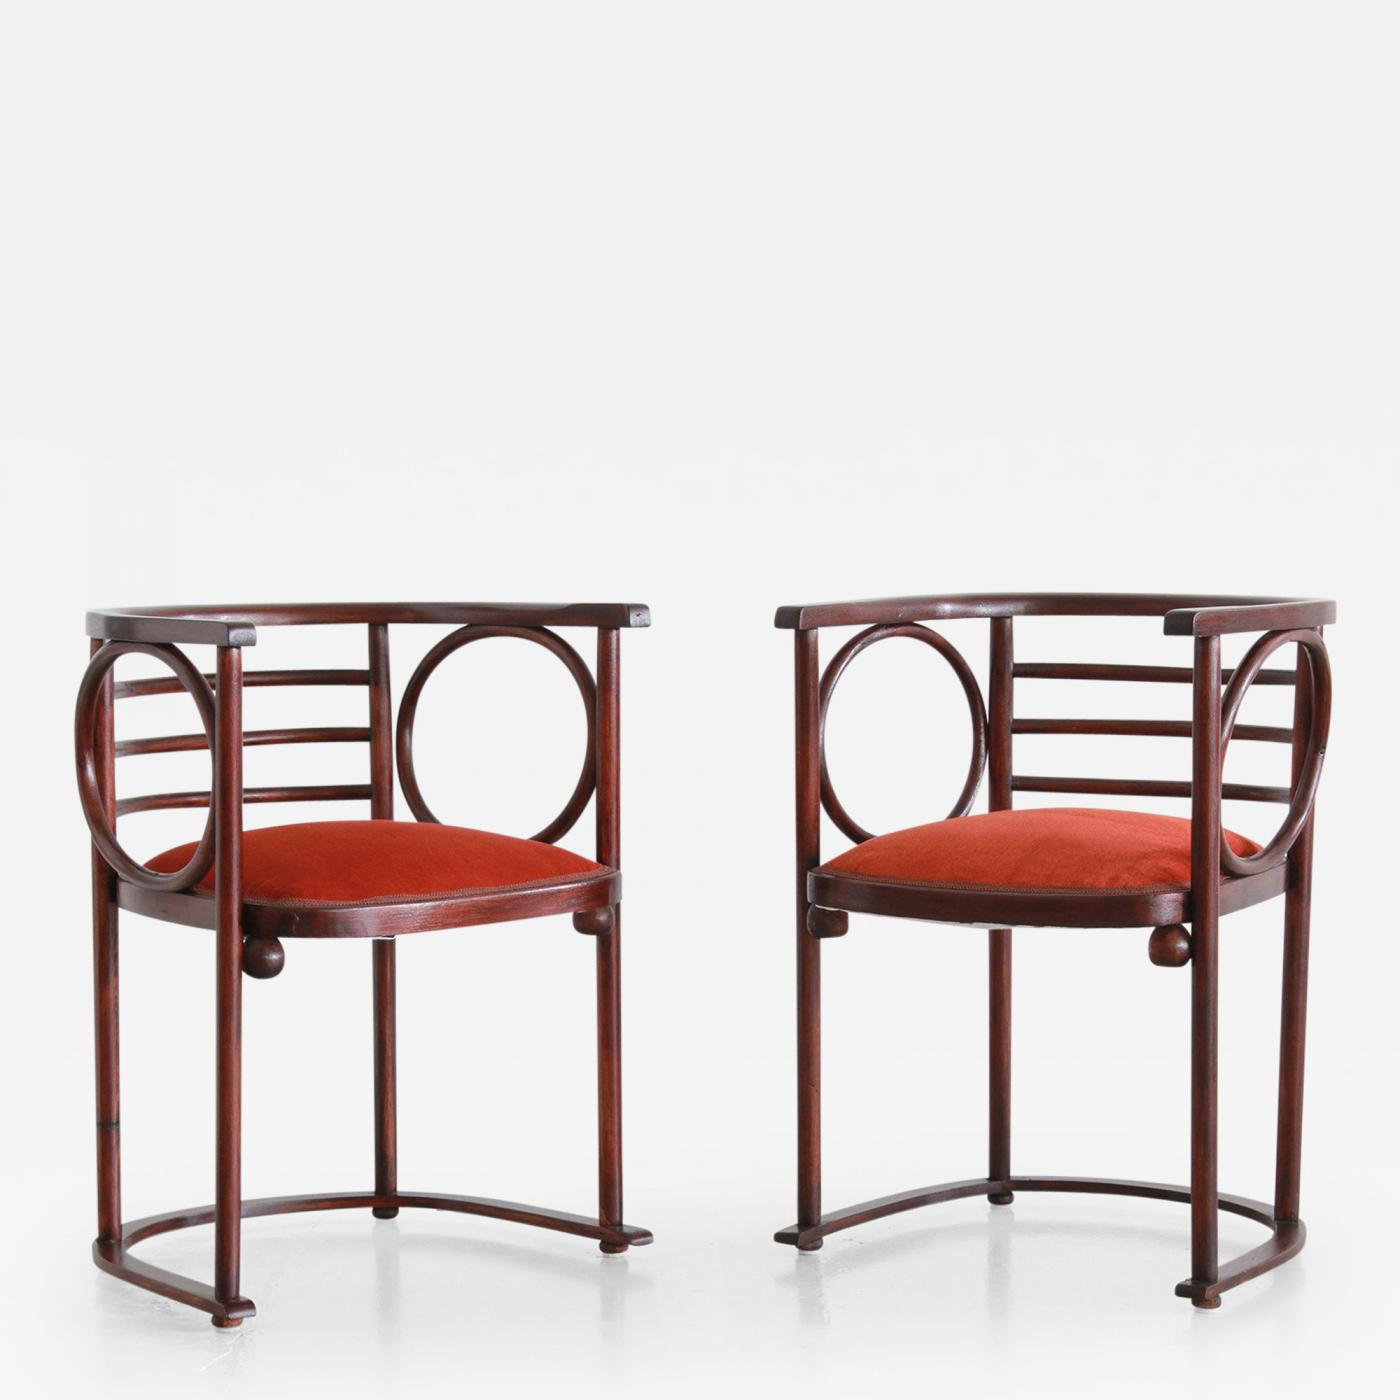 Delicieux Listings / Furniture / Seating / Armchairs · Josef Hoffmann ...